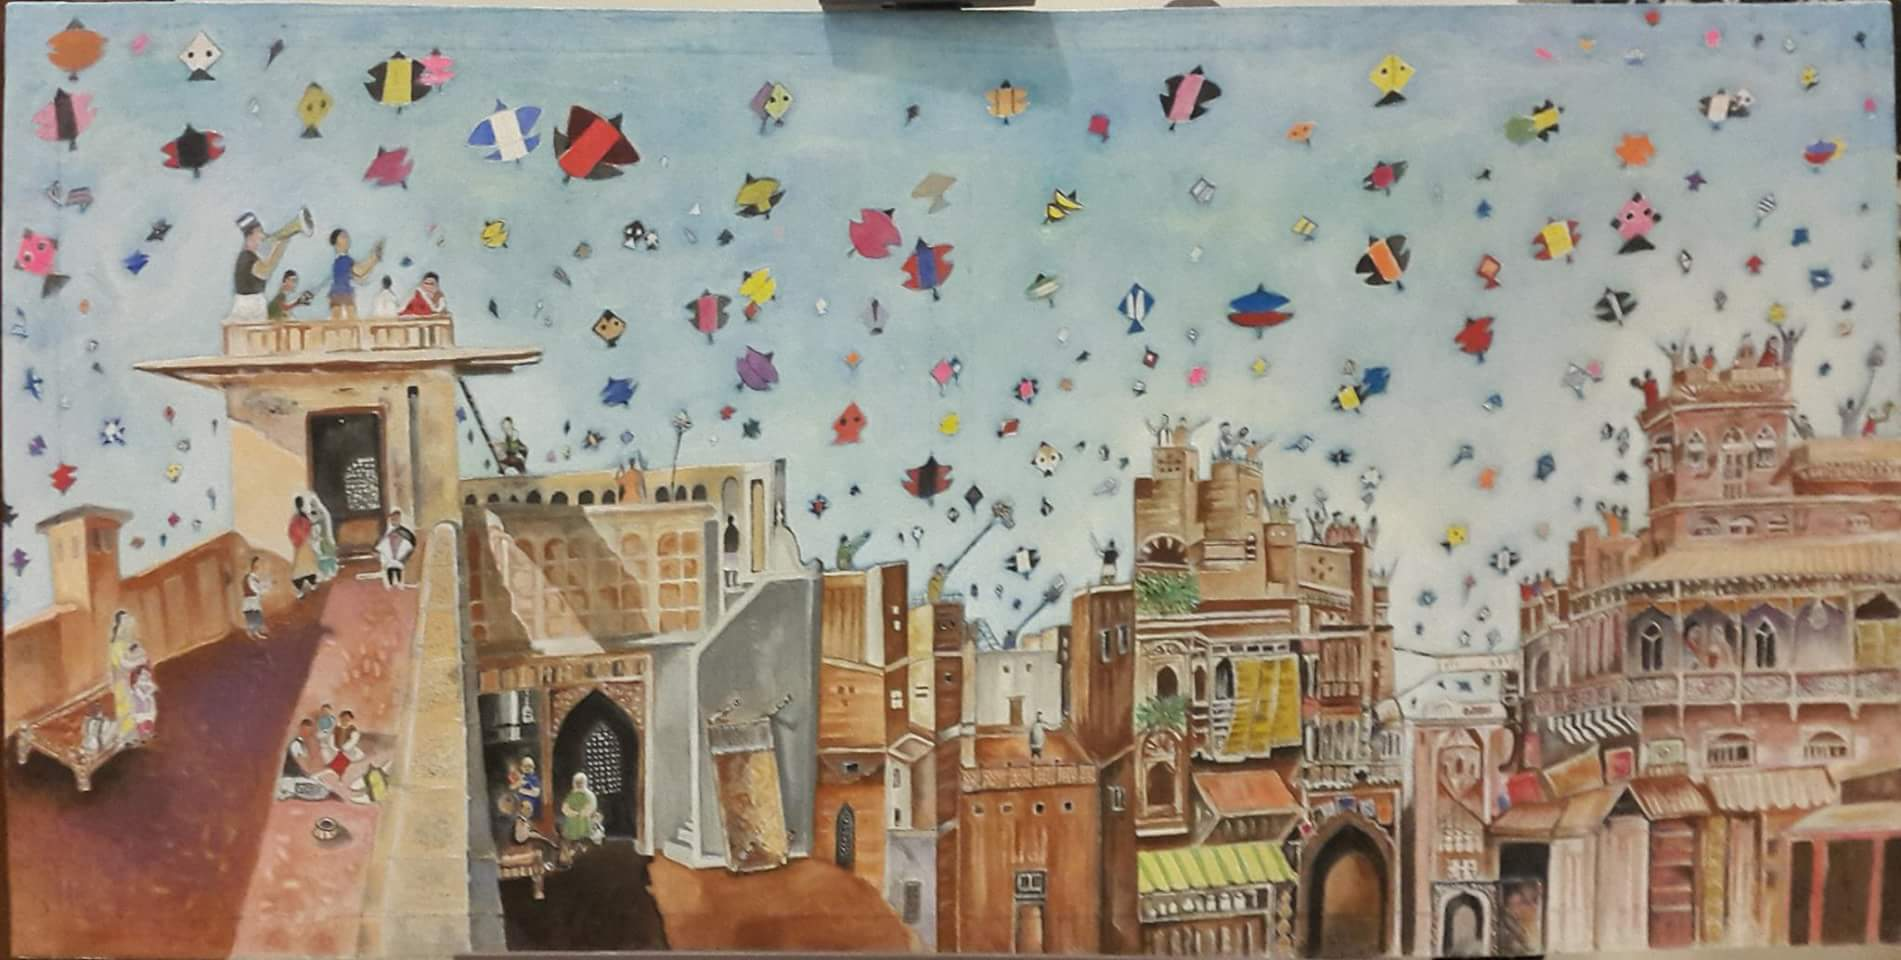 basant festival Basant panchami is one of the most important celebrations in punjab marking the beginning of the spring the festival is celebrated with grandeur get information about basant panchami here.